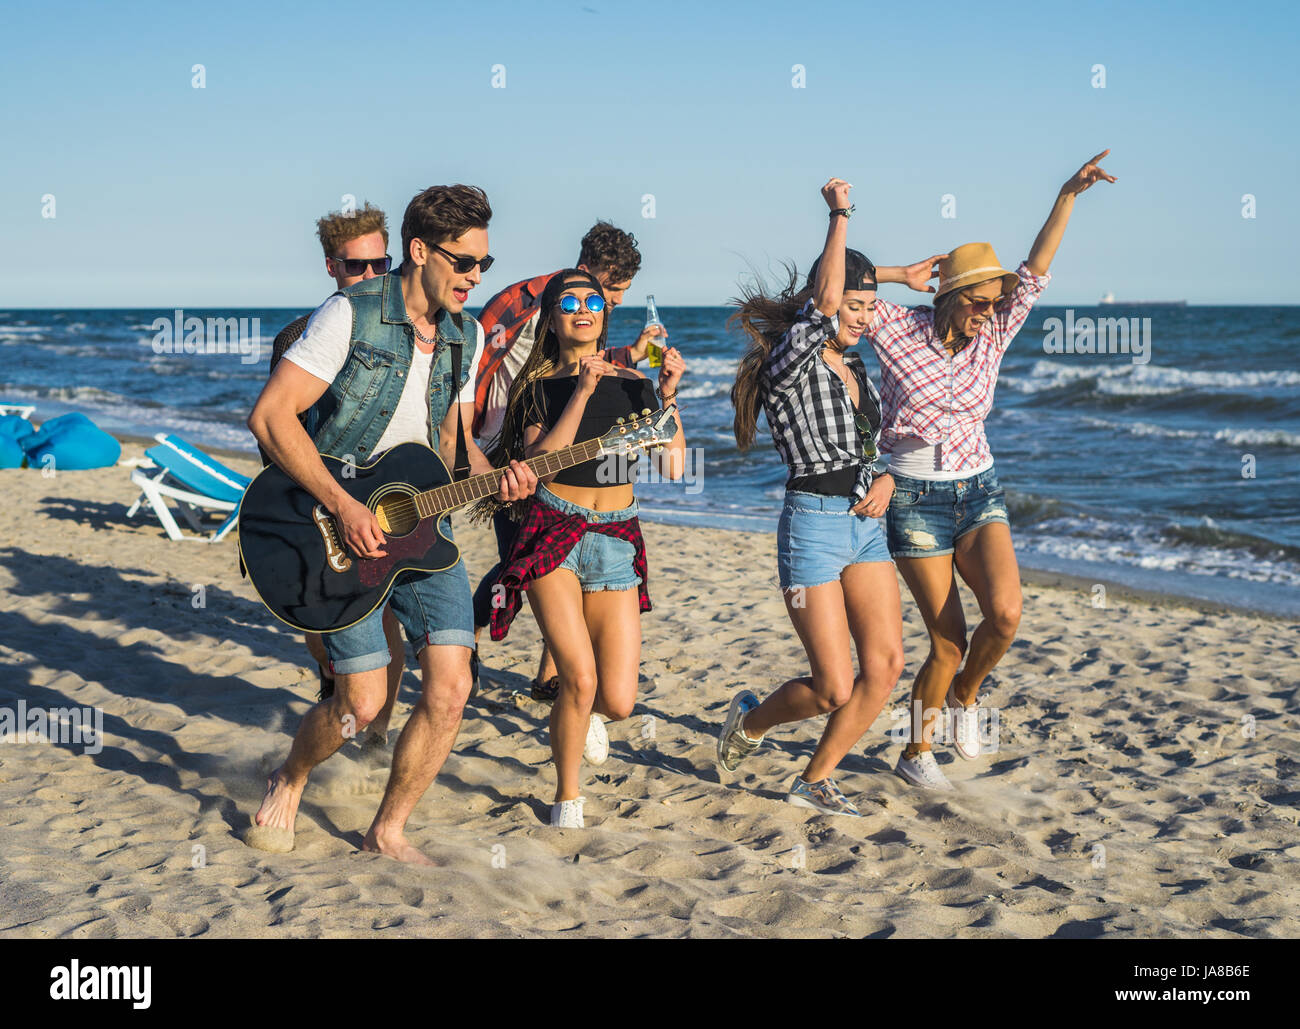 Party on the beach with guitar. Friends dancing together at the beach - Stock Image